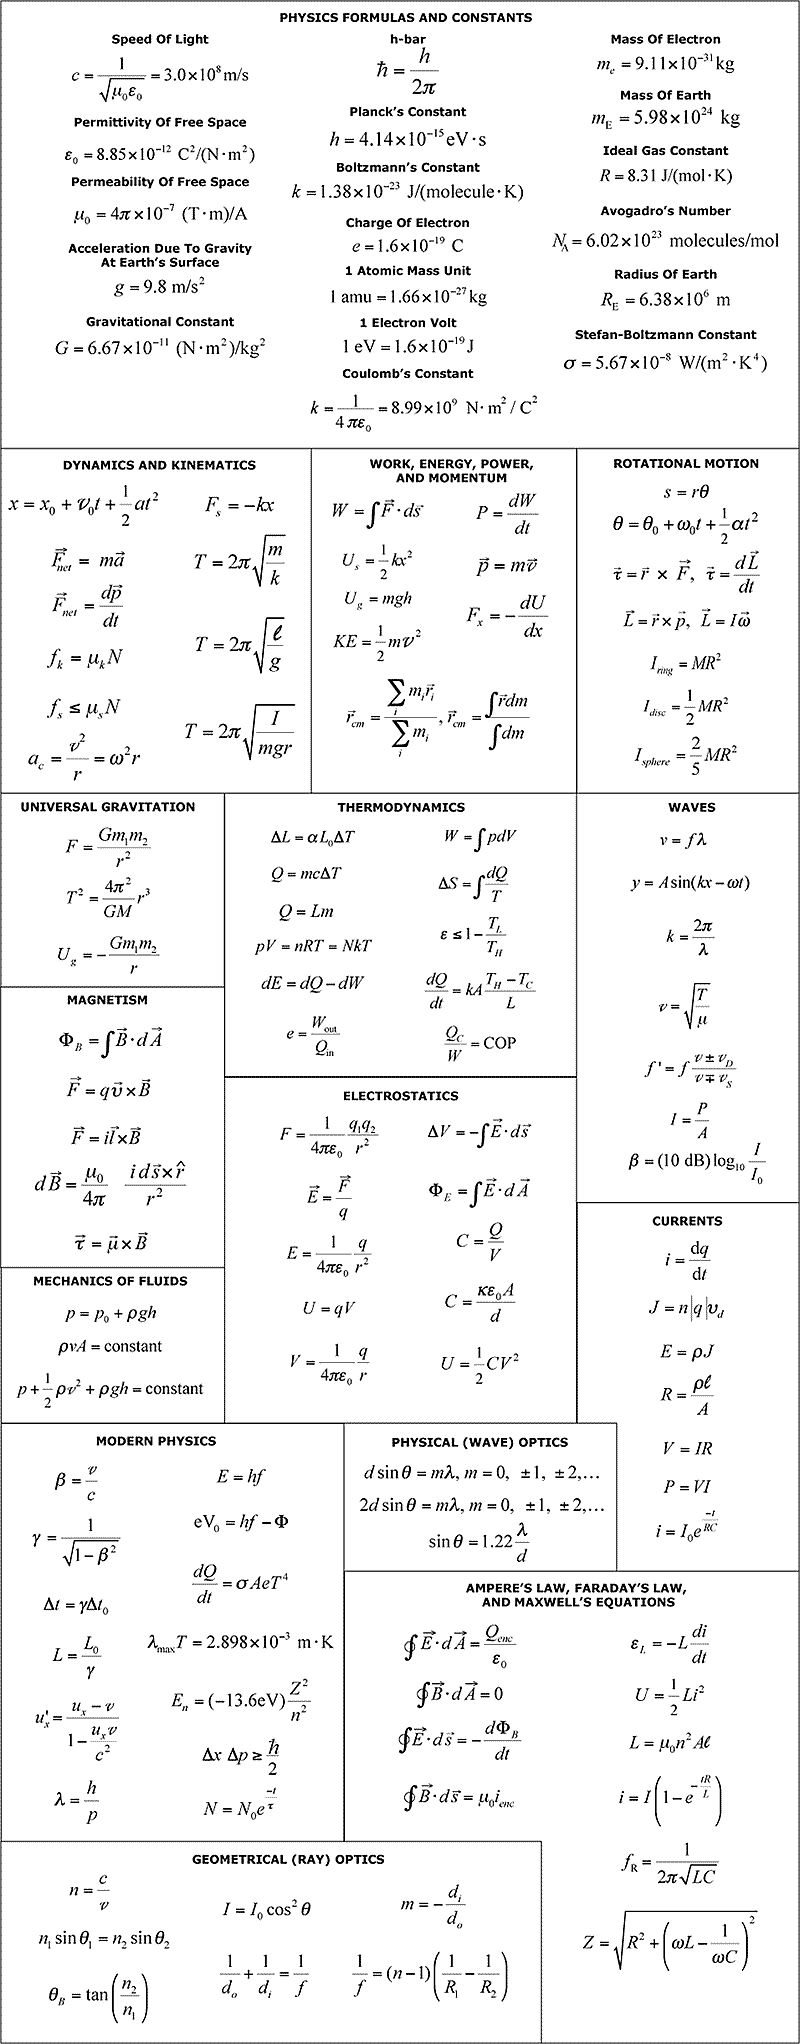 The Kinematic Equations